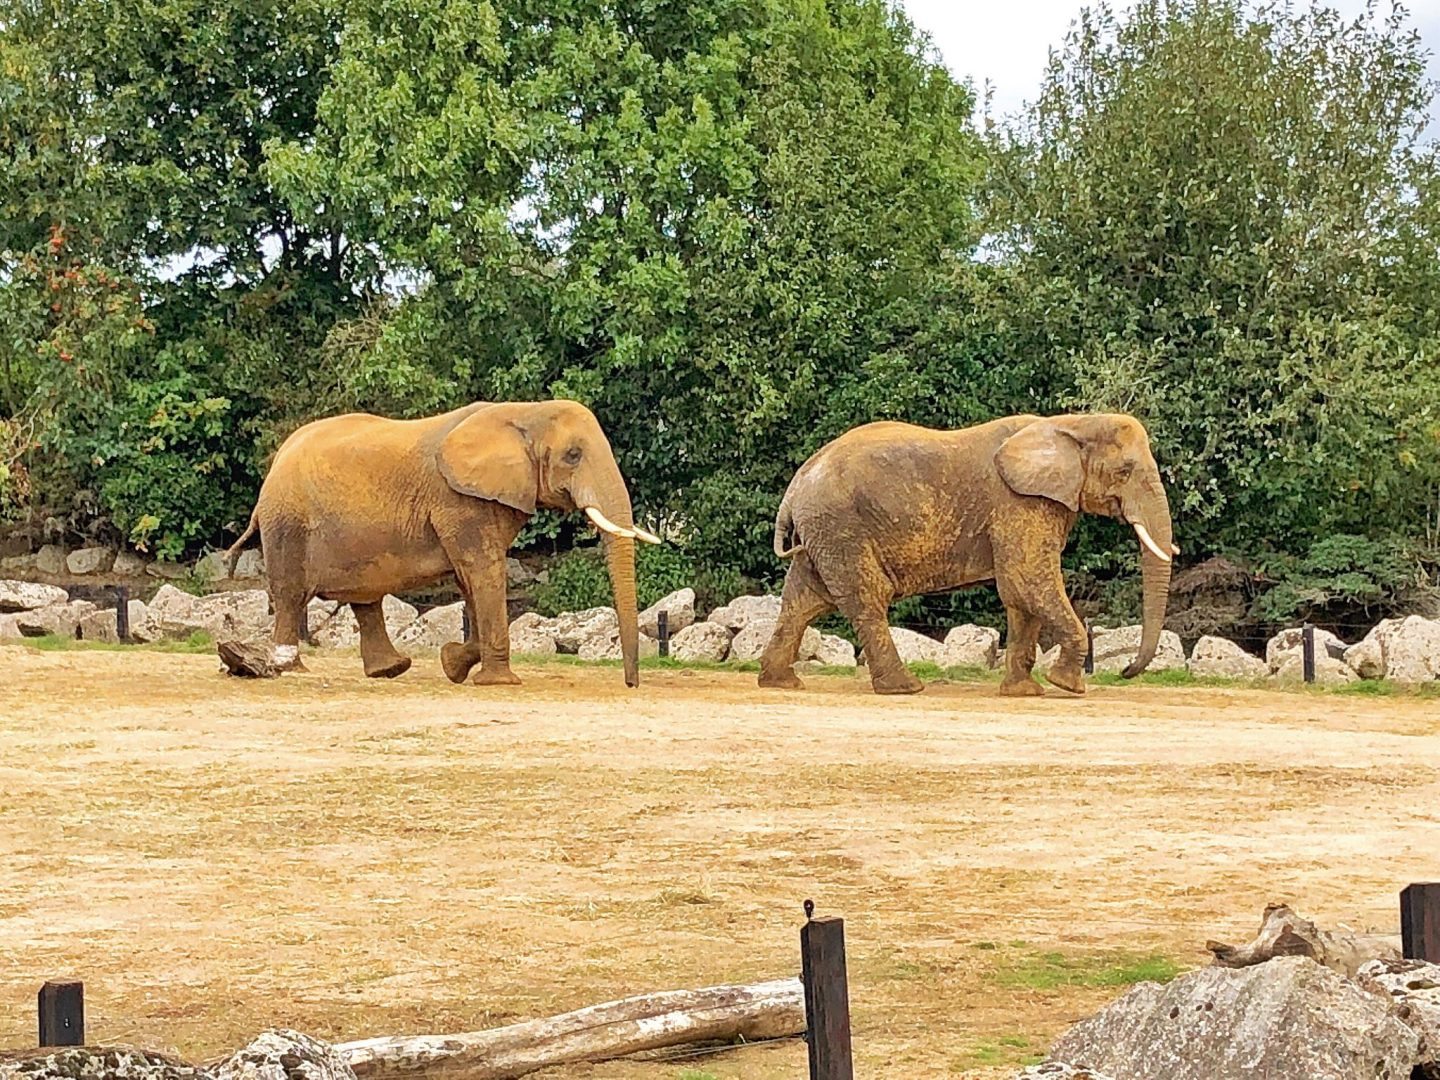 Colchester Zoo Elephant Enclosure